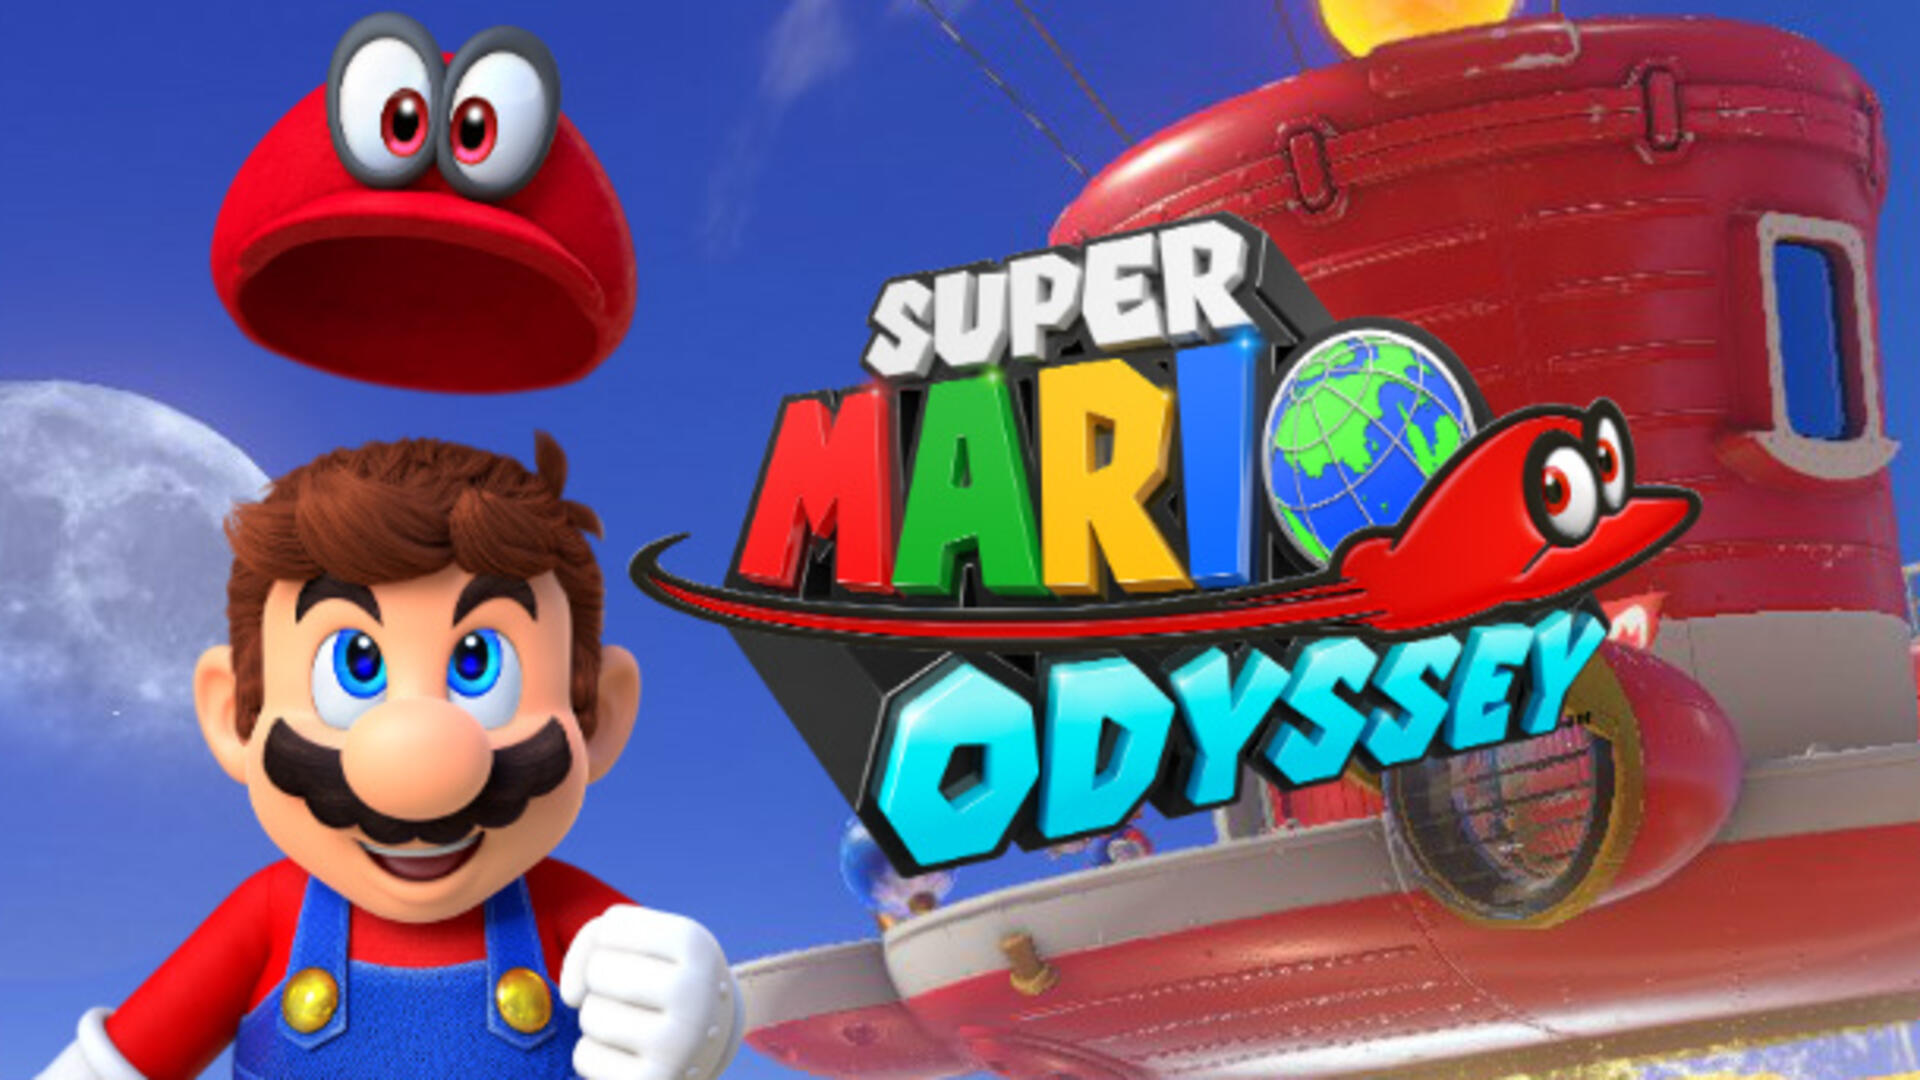 Edge Magazine Reportedly Gives Super Mario Odyssey a Perfect Score